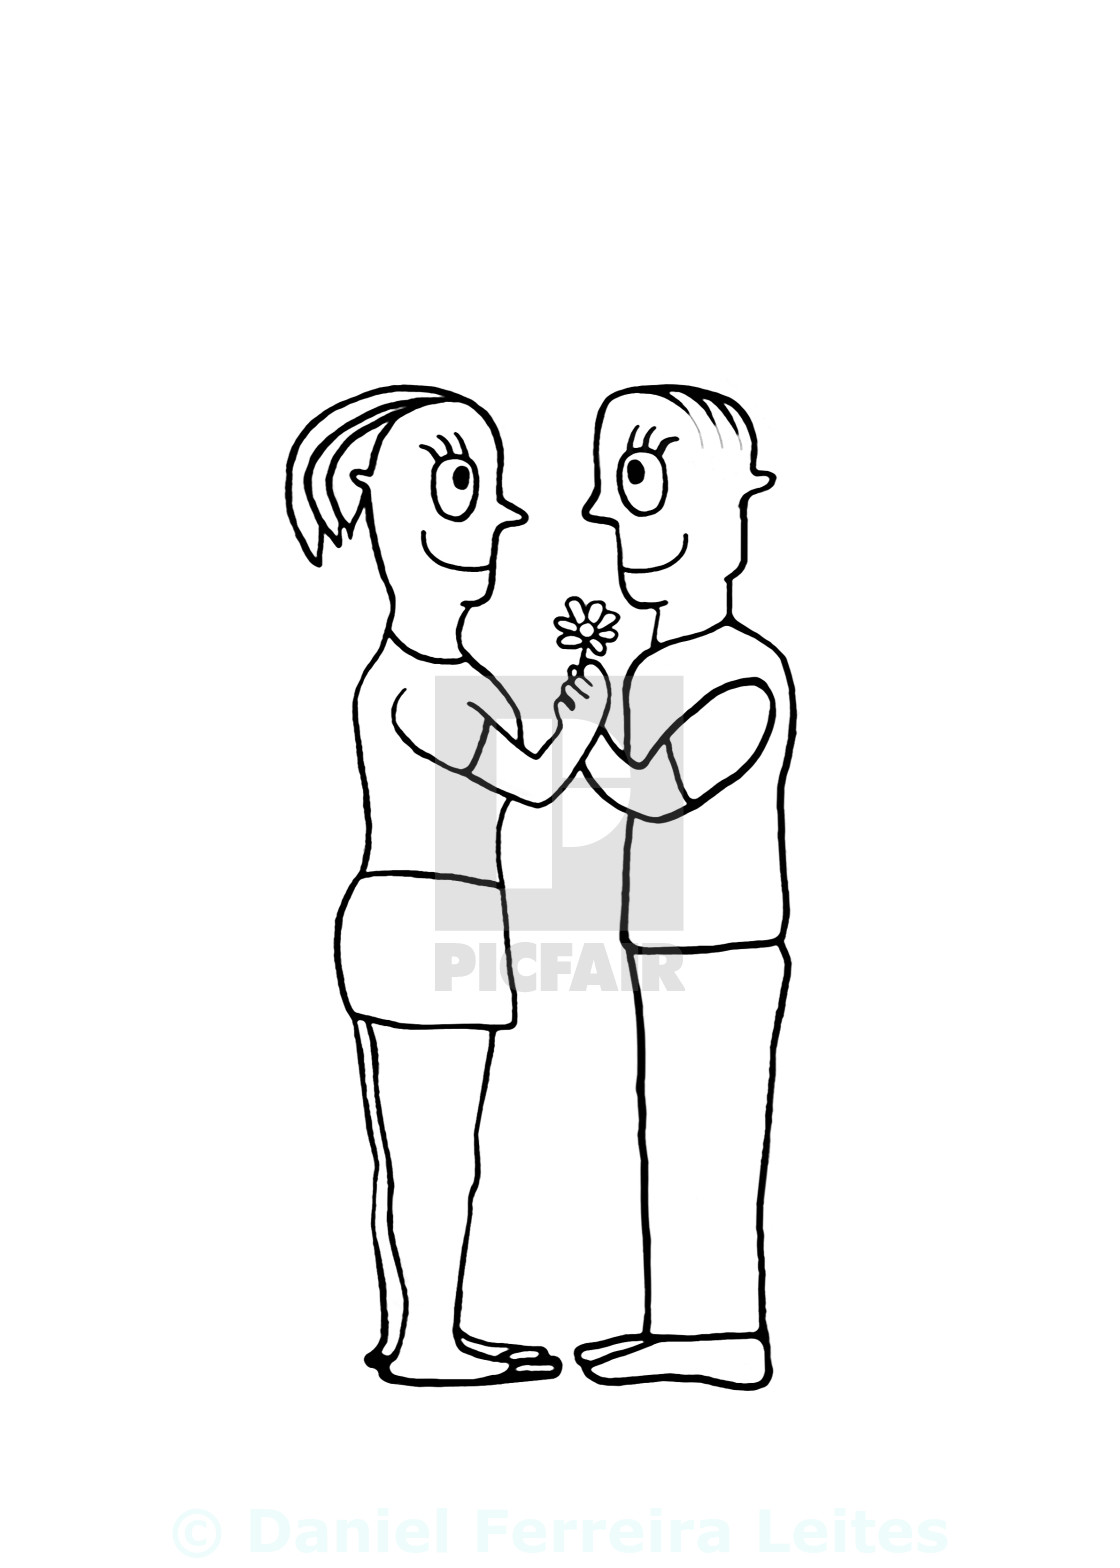 Black and white drawing couple in love concept license